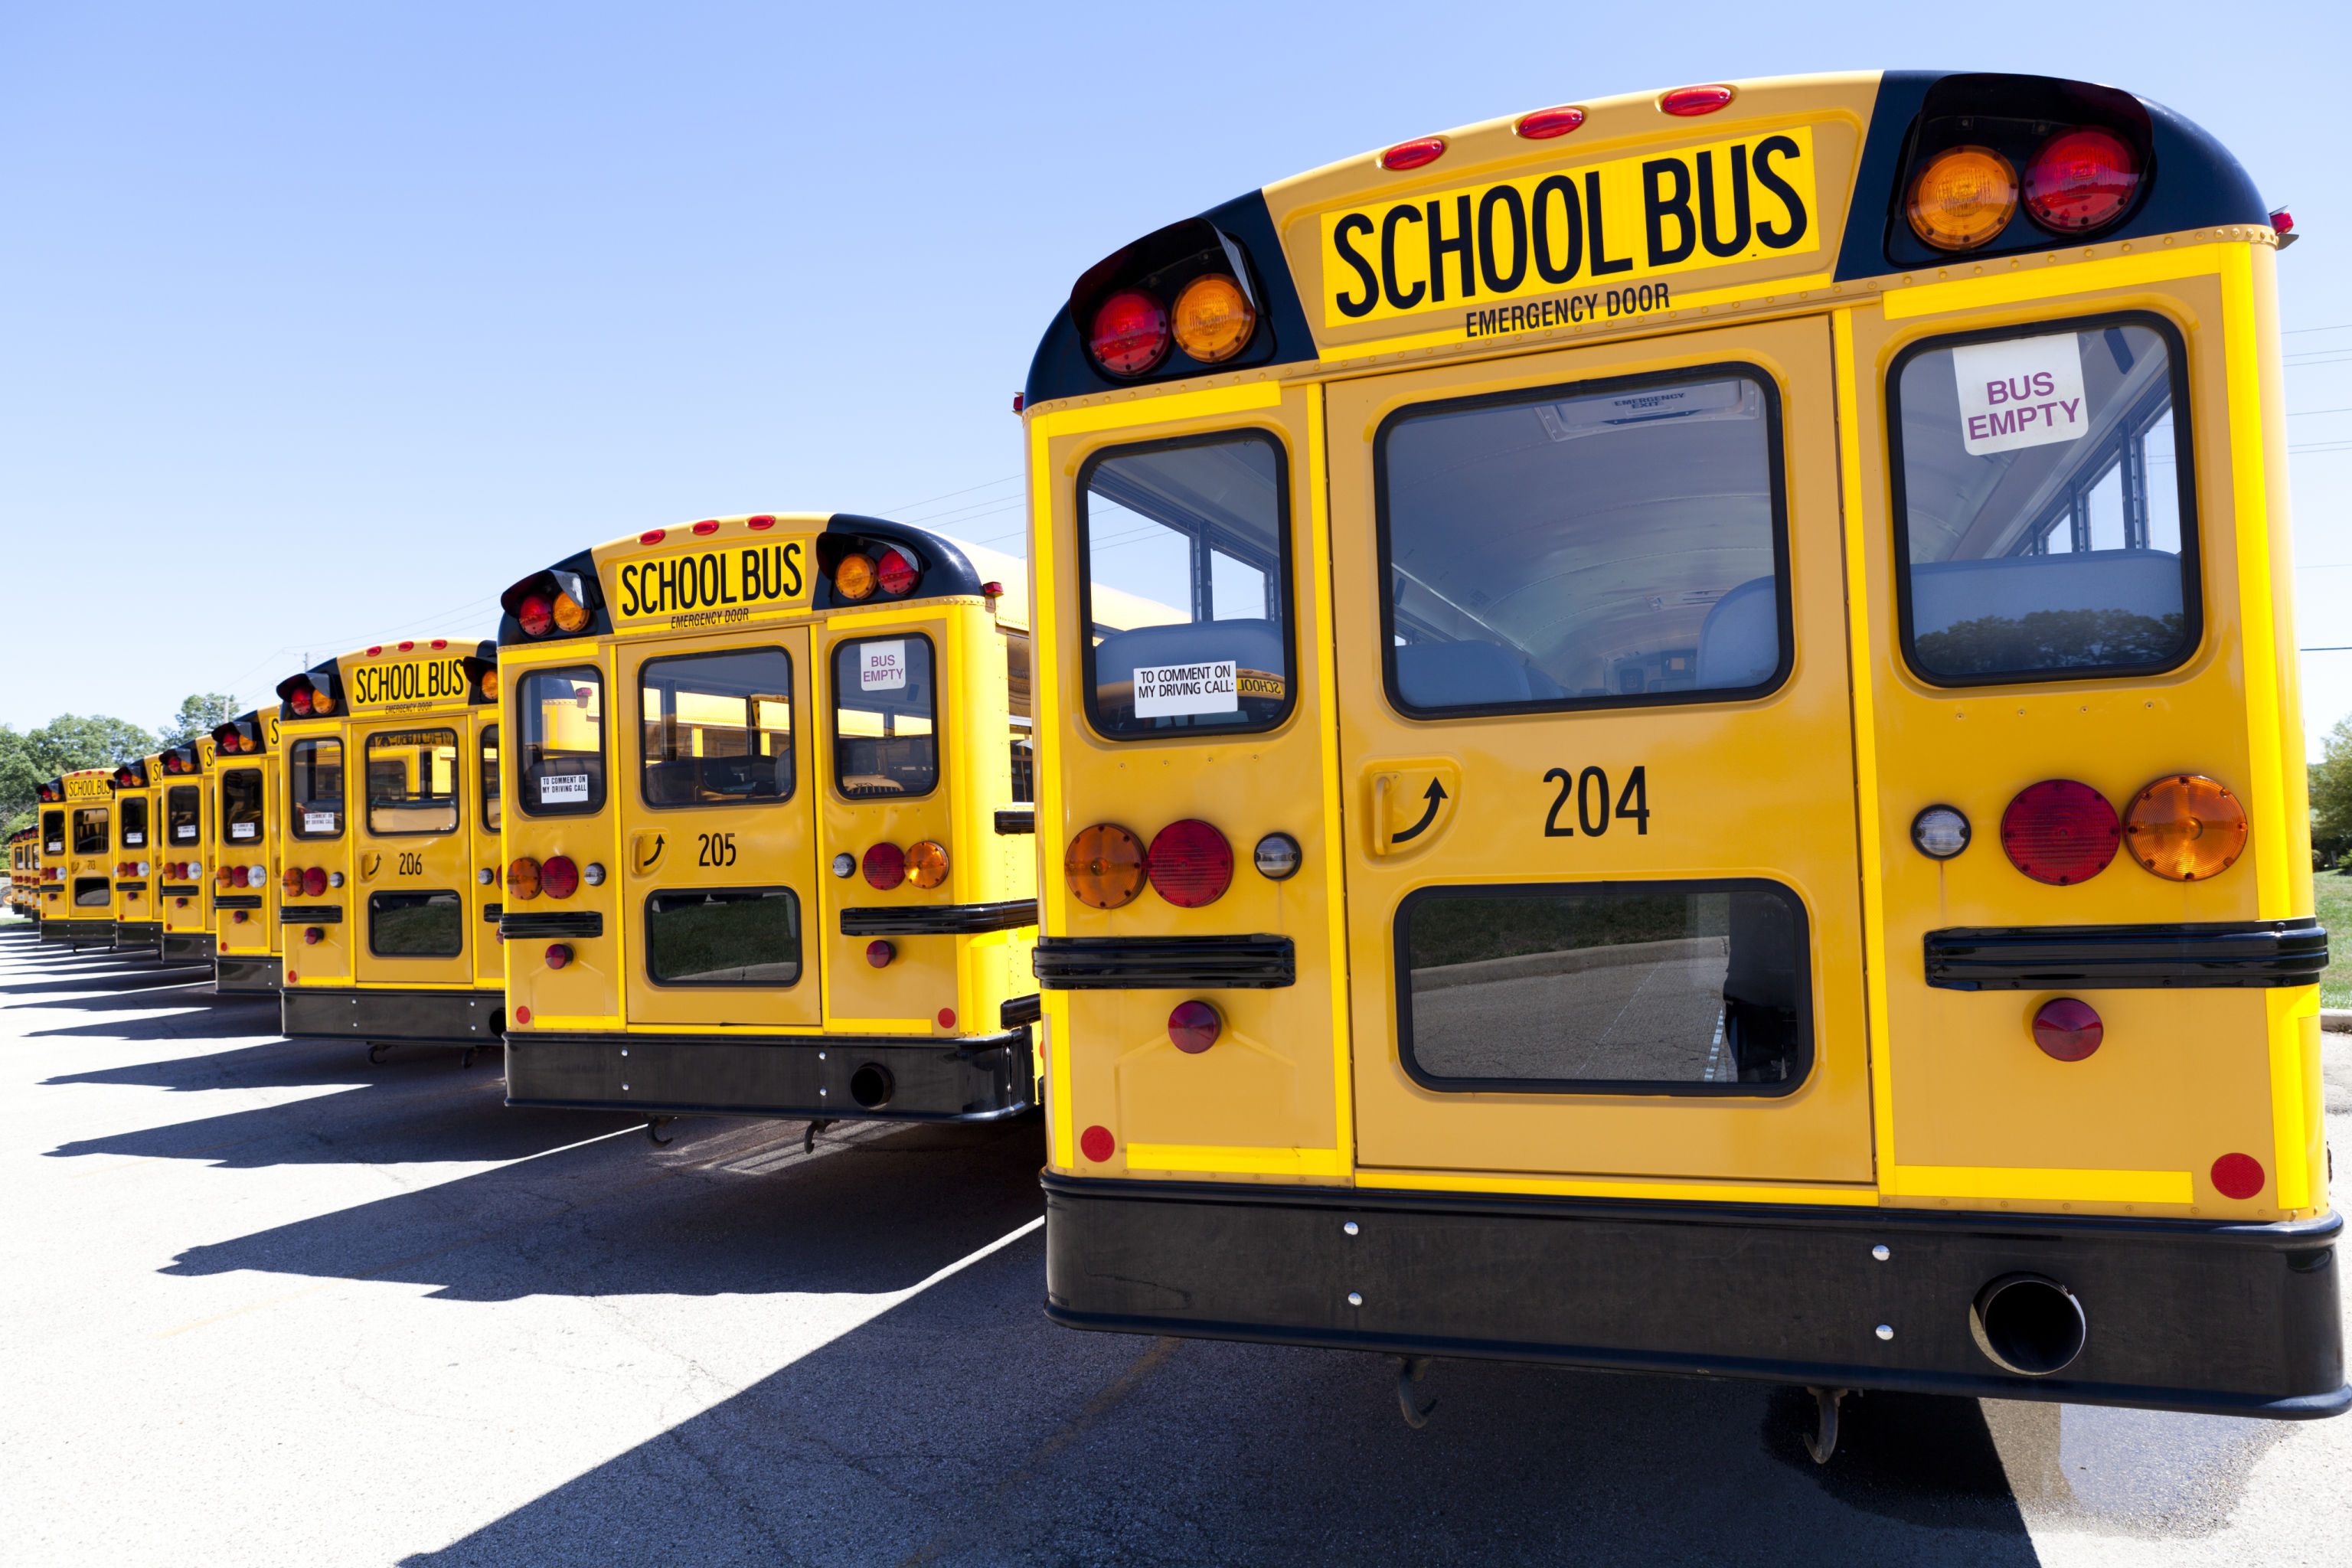 Parked school buses.